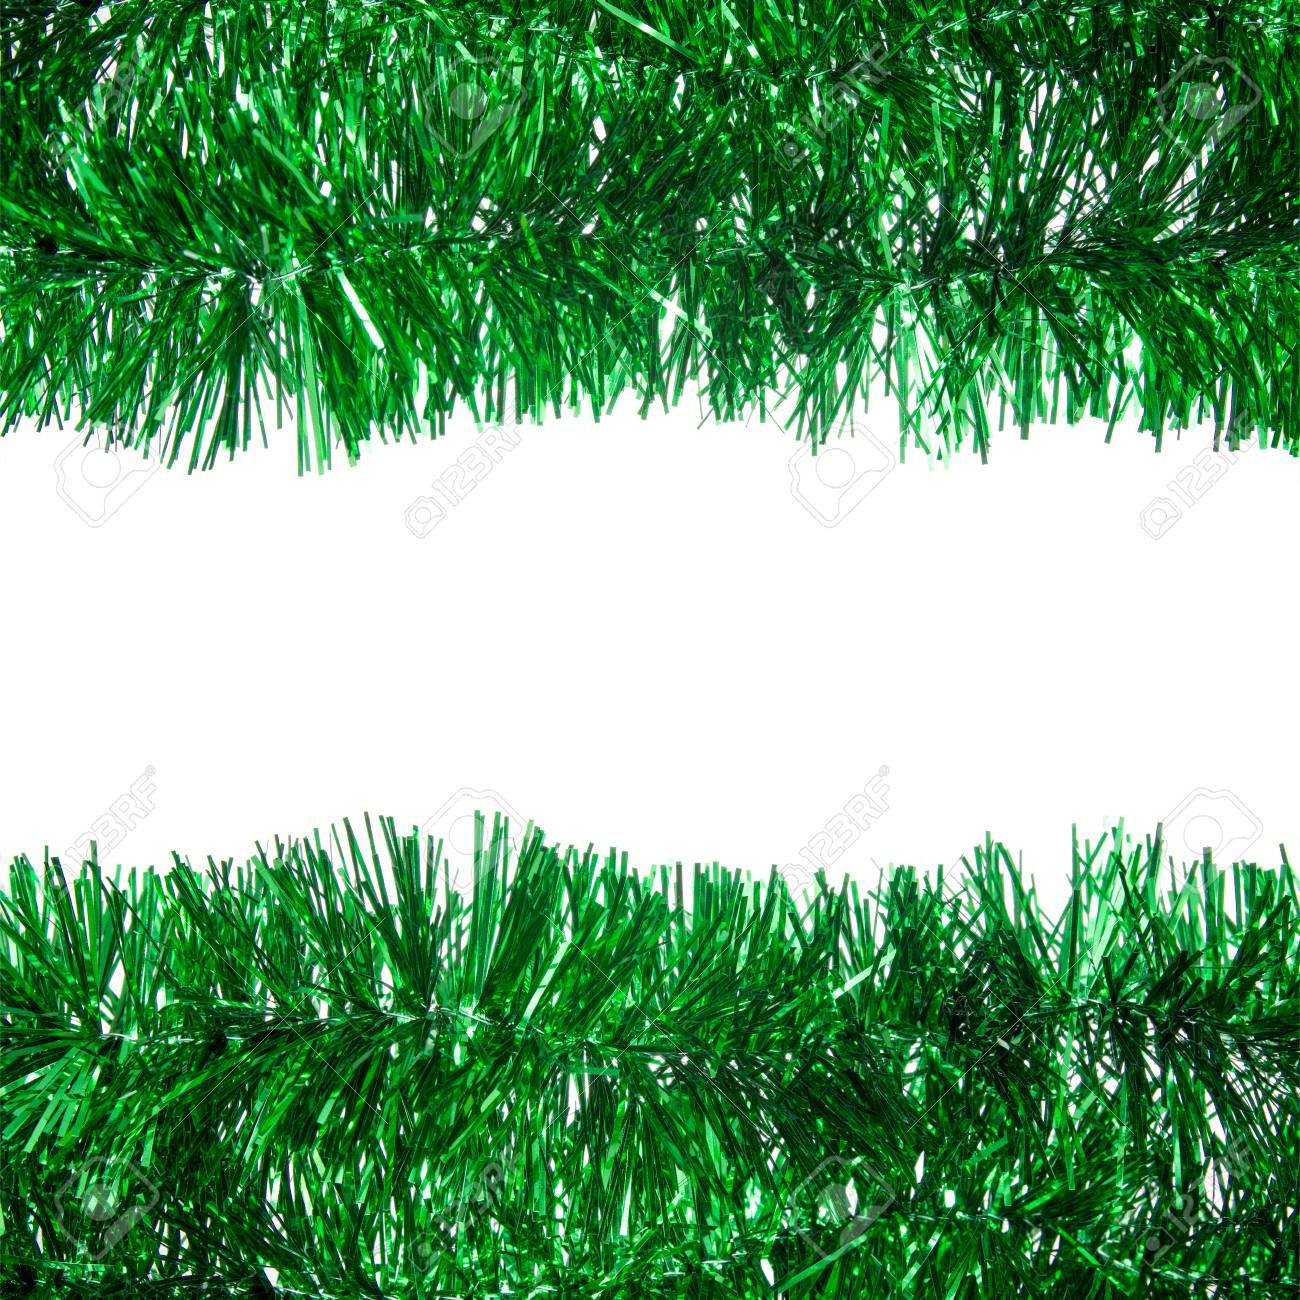 Christmas Tinsel Garland.Green Christmas Tinsel Garland With Center Copy Space